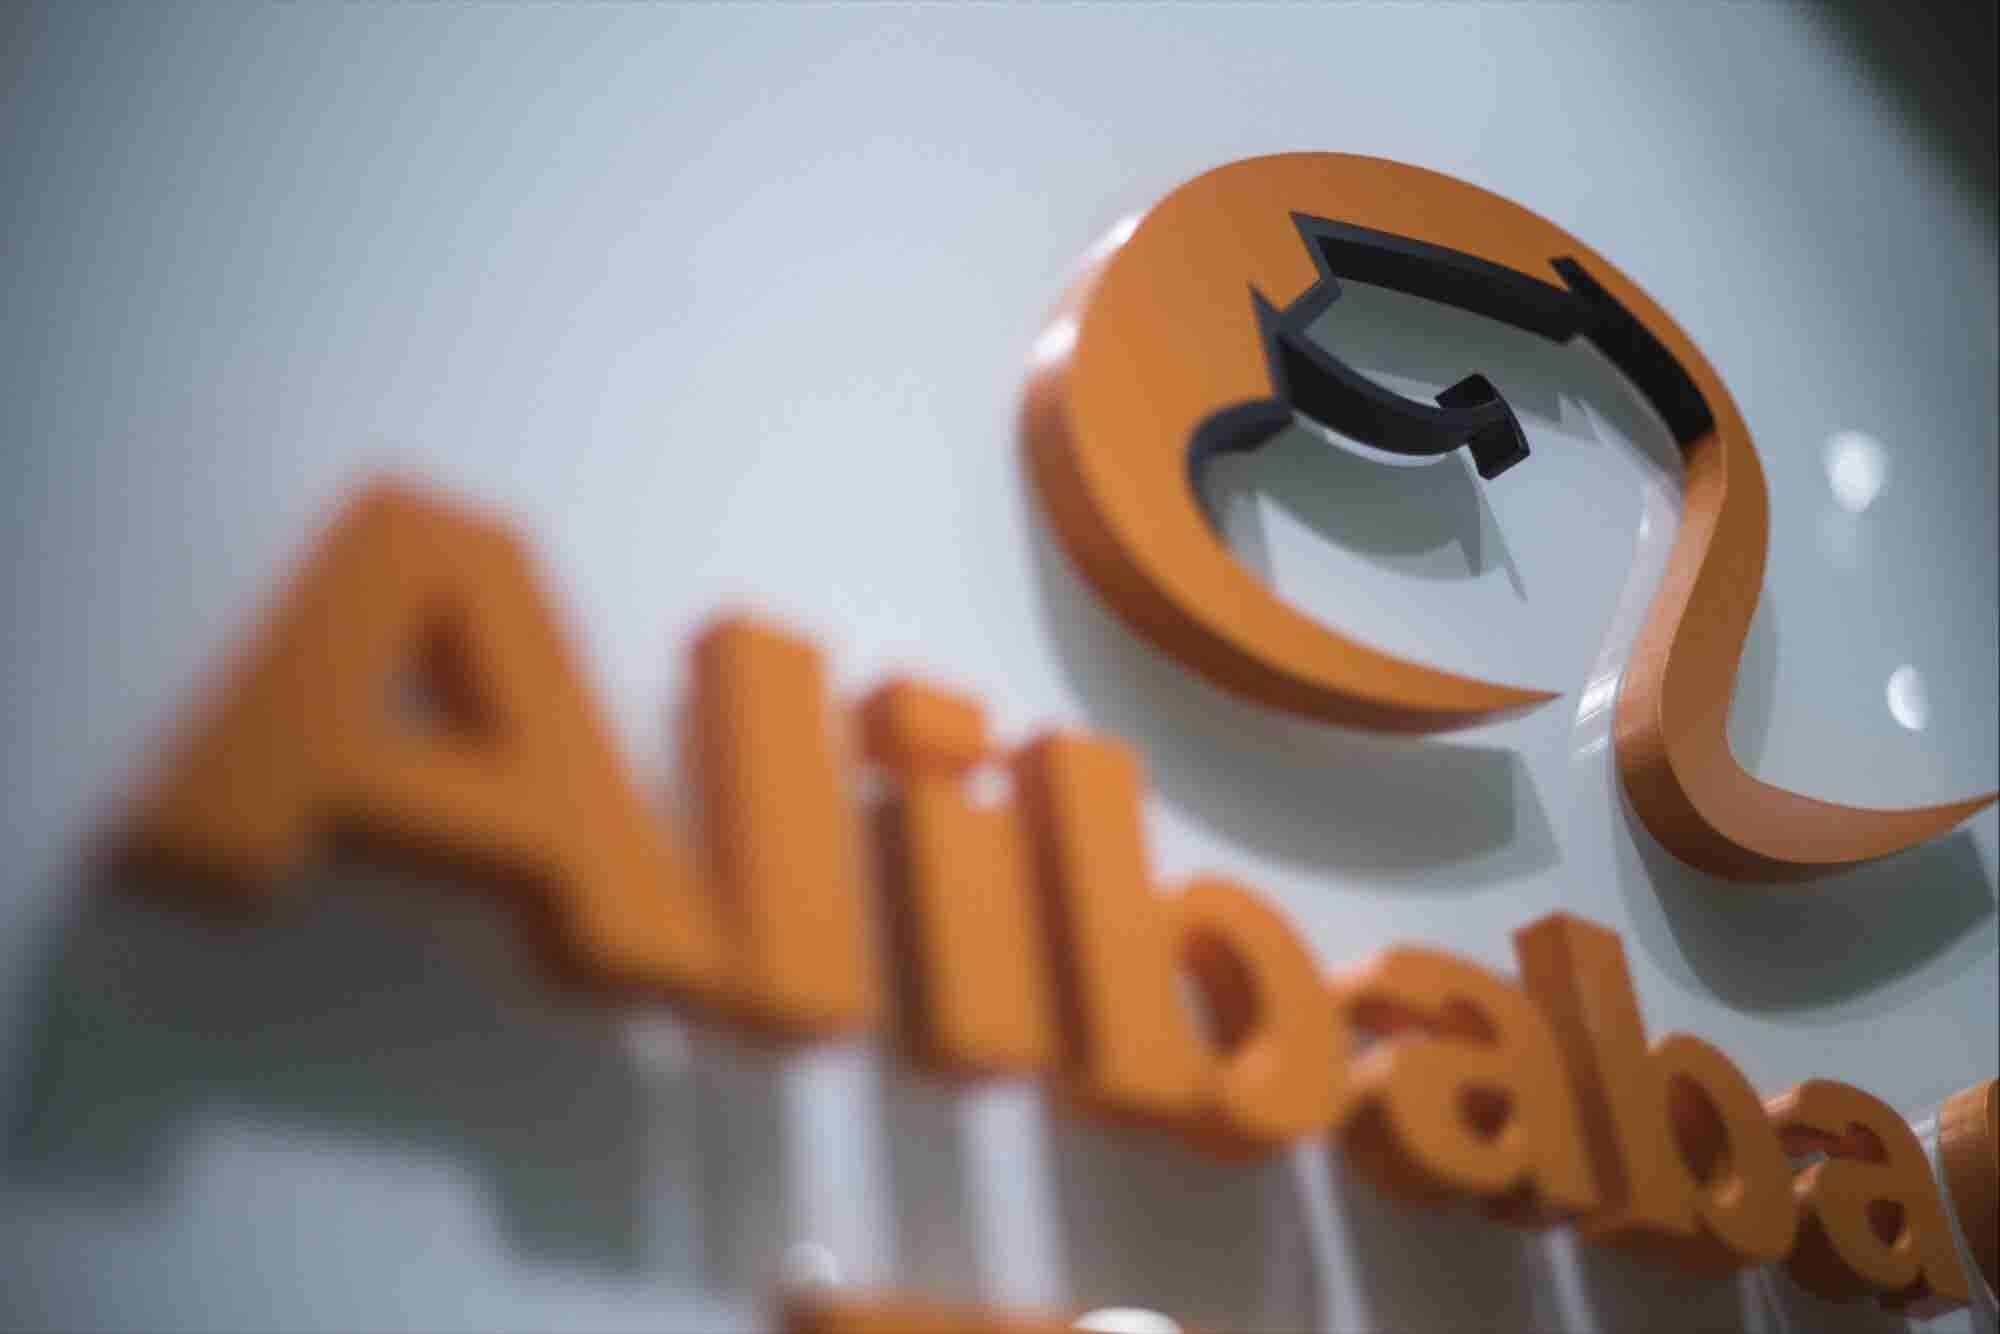 Alibaba Vows to Keep Fighting Fakes Despite Anti-Counterfeiting Group Snub